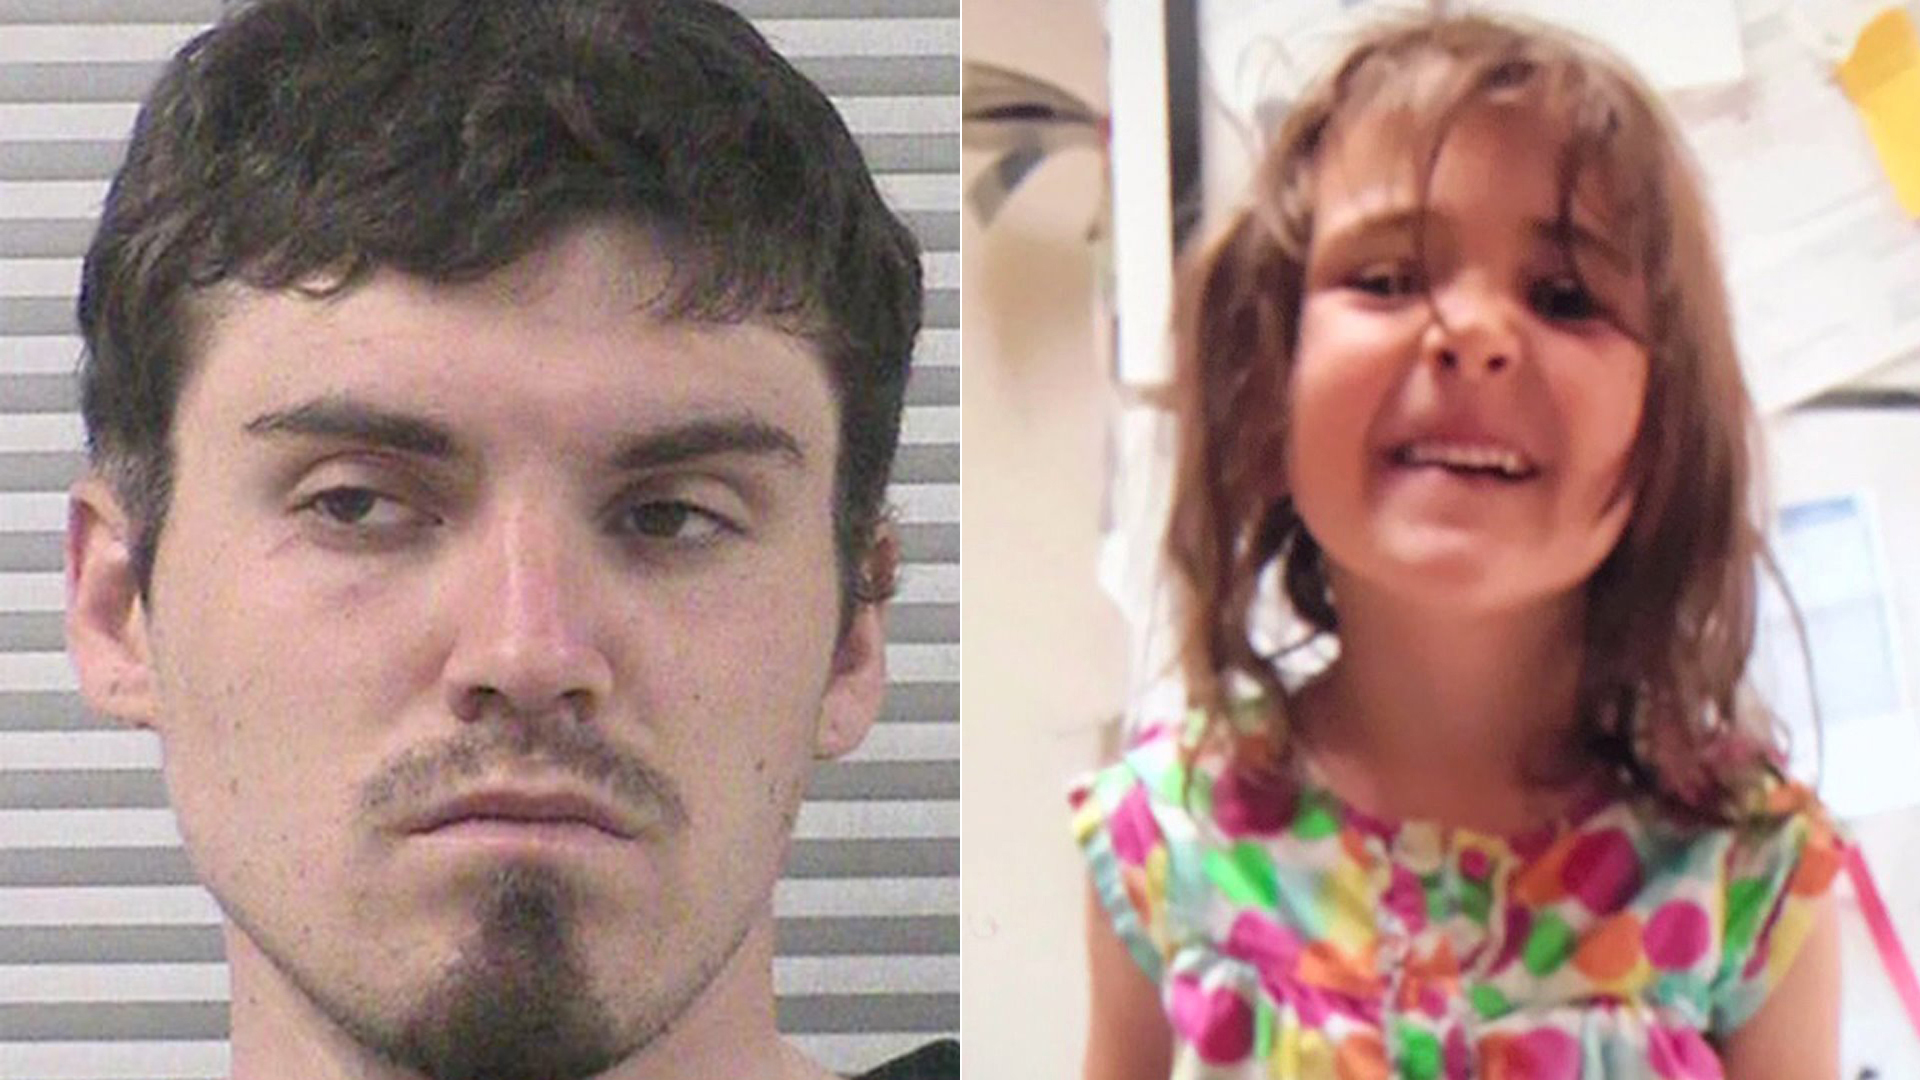 Alex Whipple, left, is seen in booking photo released by the Cache County Sheriff's Office; Elizabeth Shelley, right, is seen in a photo released by the Logan Police Department.